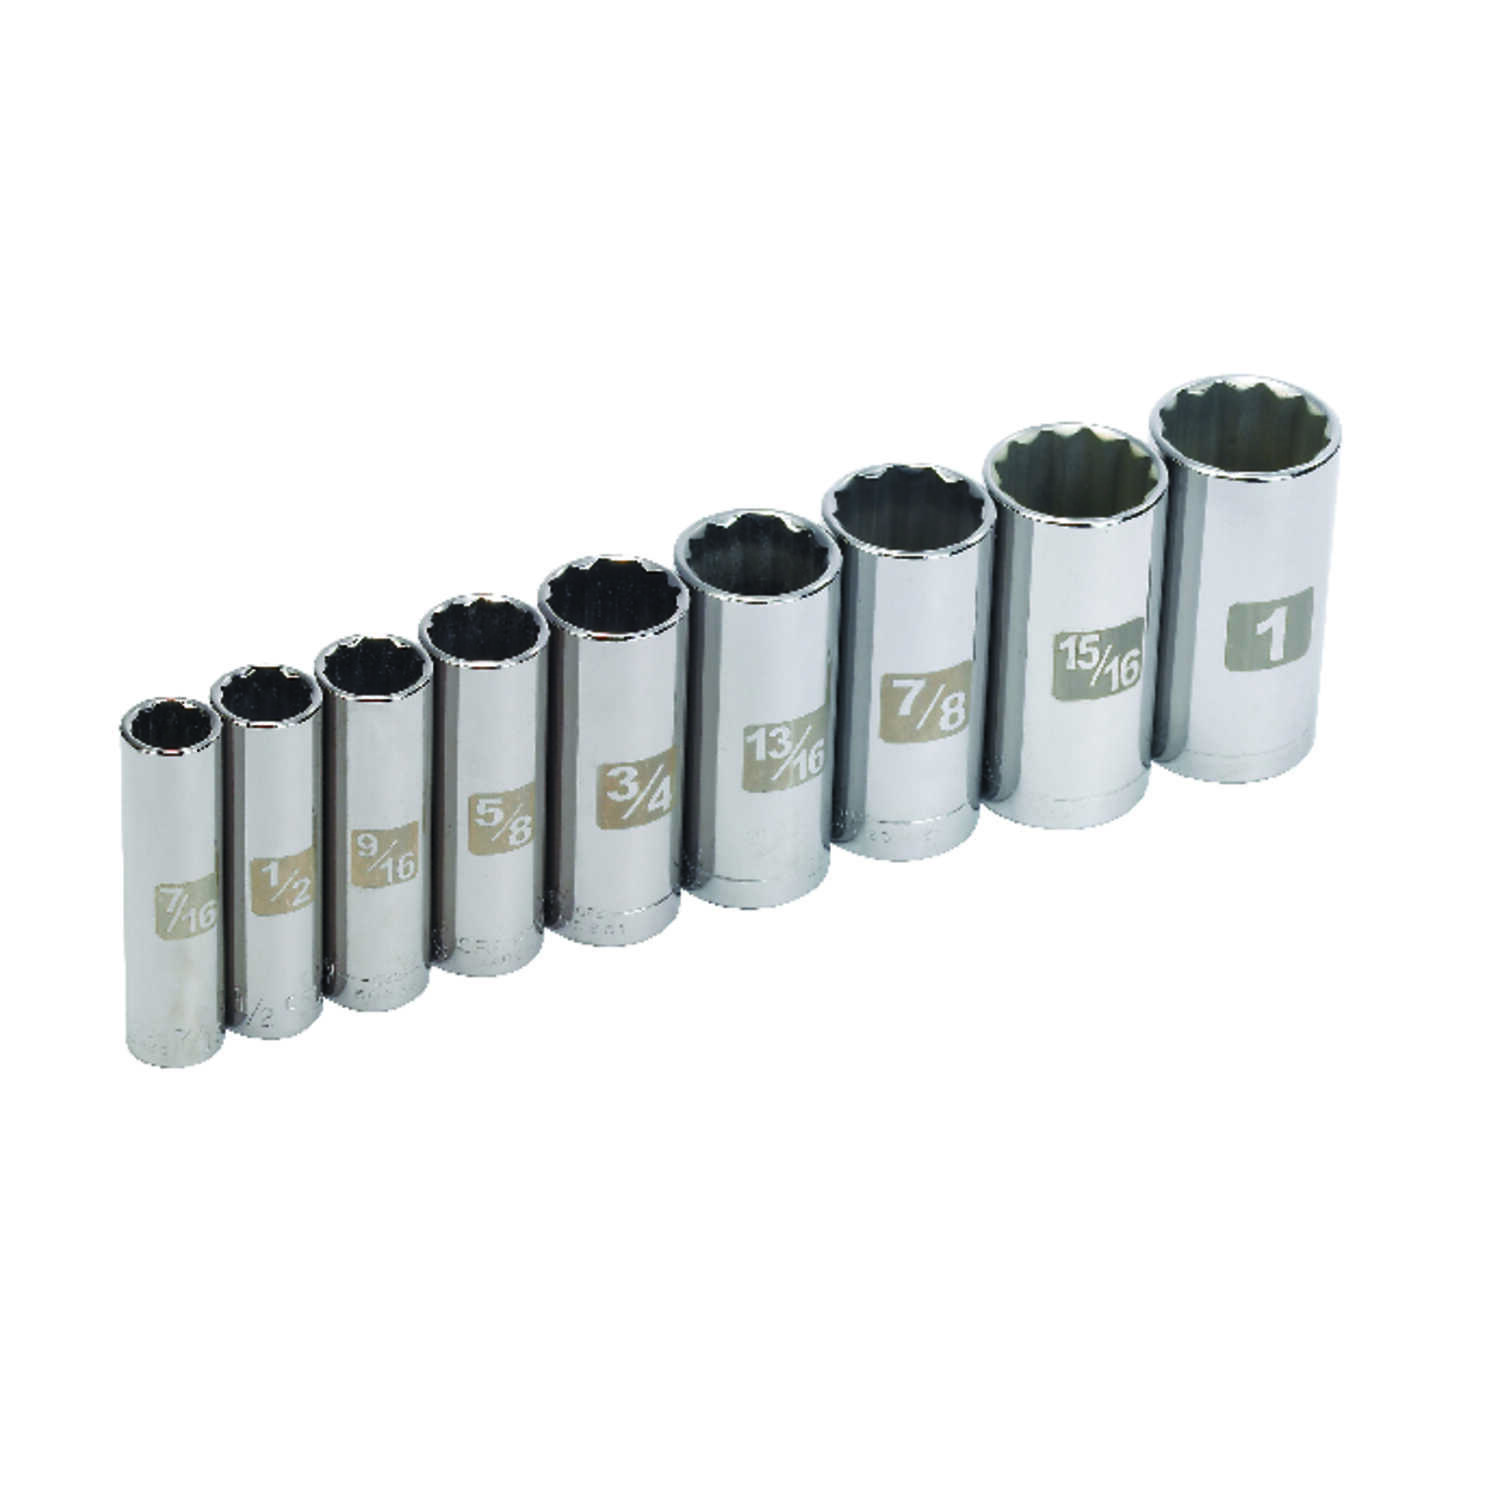 Craftsman  1 in.  x 3/8 in. drive  SAE  12 Point Socket Set  9 pc.